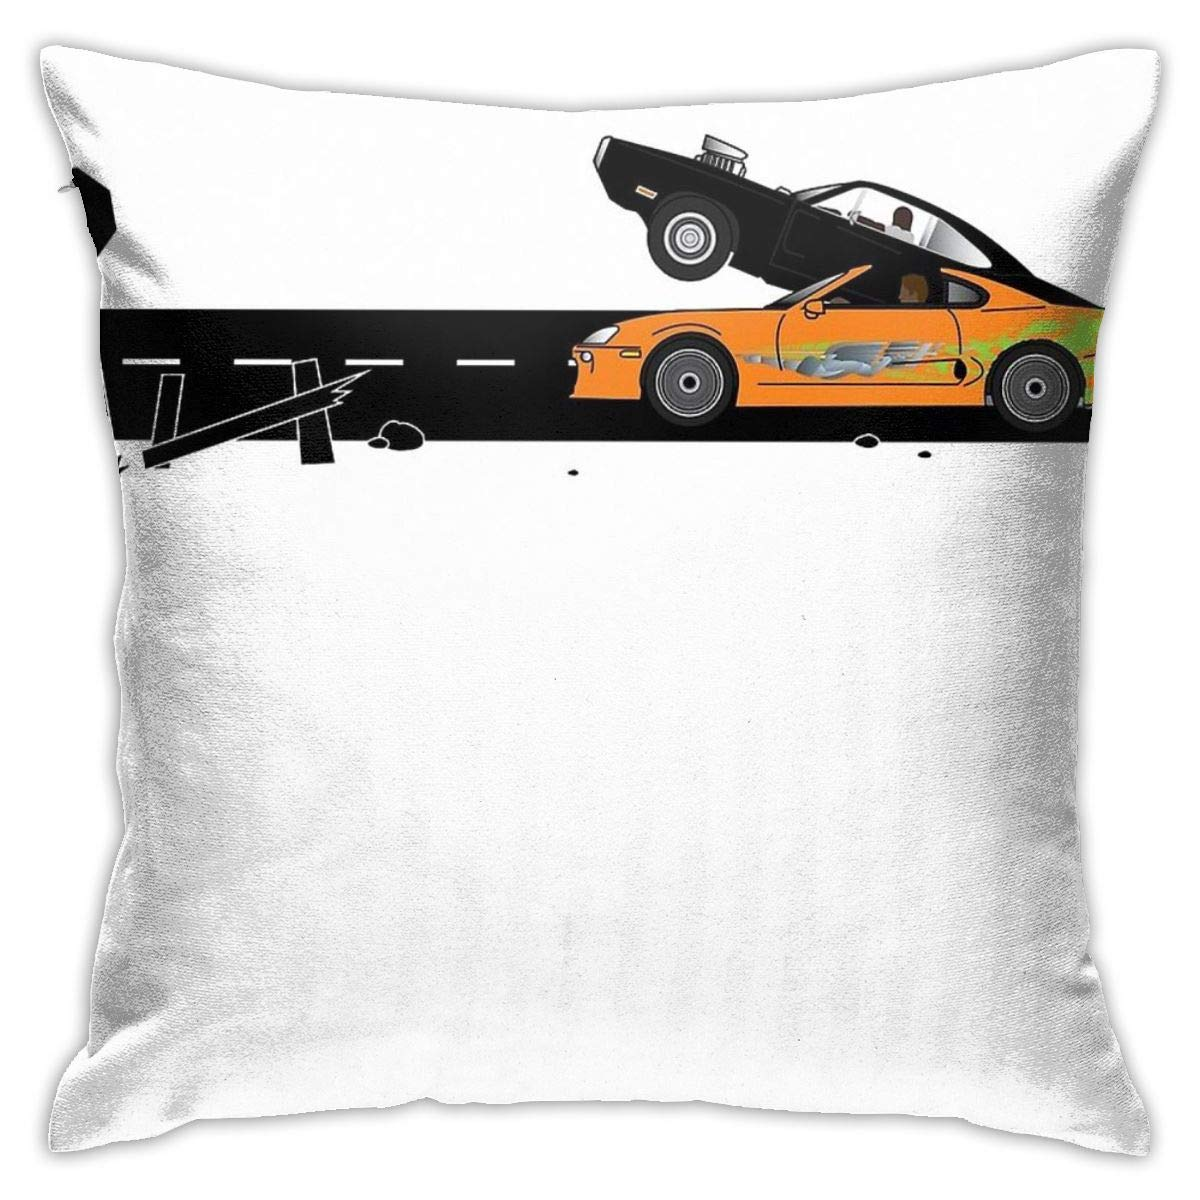 JACHE The Fast and The Furious Classic Moment Decorative Throw Pillow Covers for Sofa Couch Cushion Pillow Cases 18x18 Inch